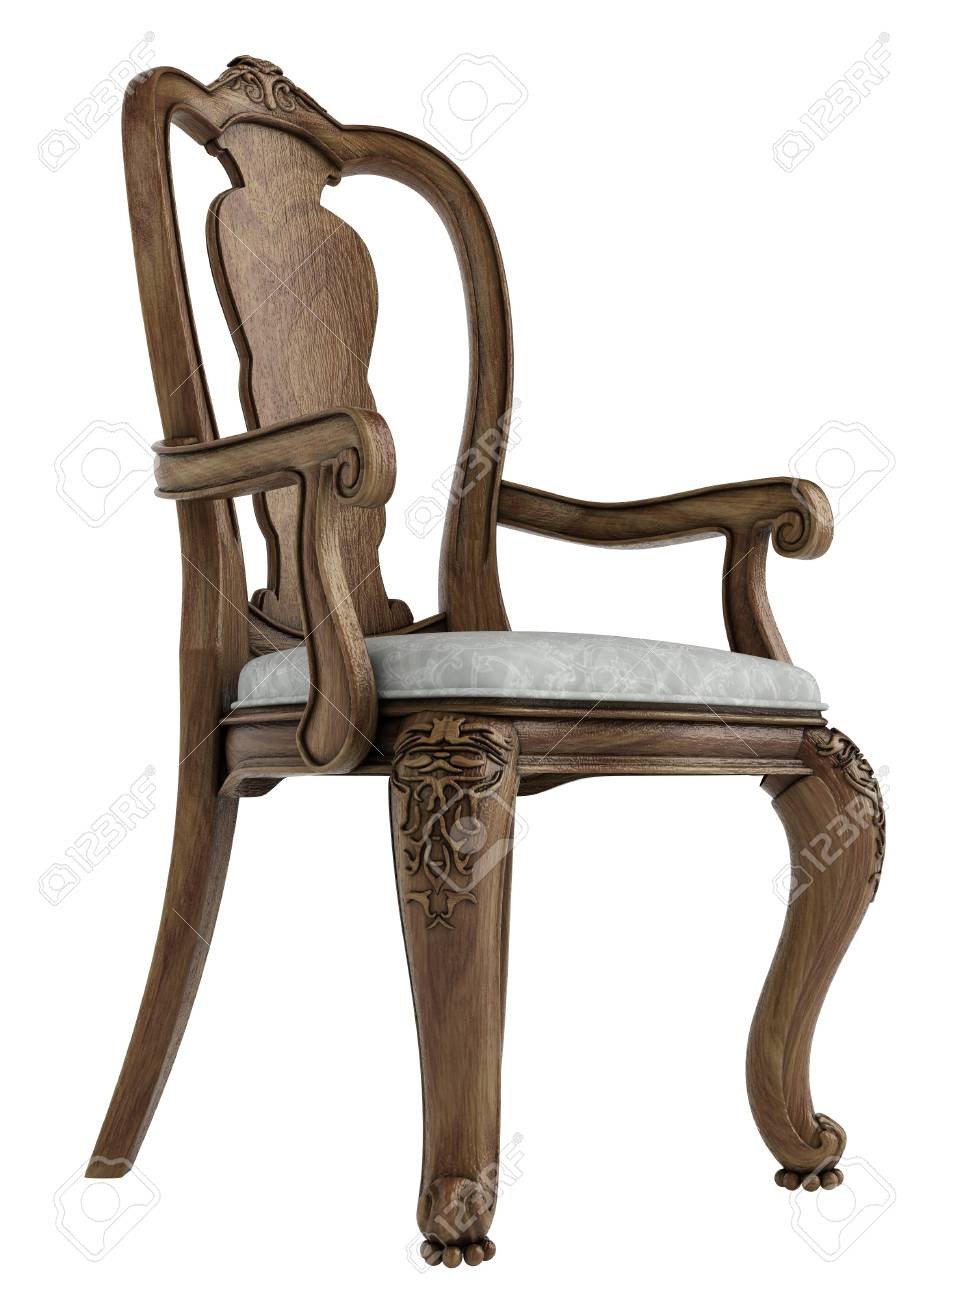 amazing old wooden chair wood antique arm foter schoolhouse morgranjohson 3